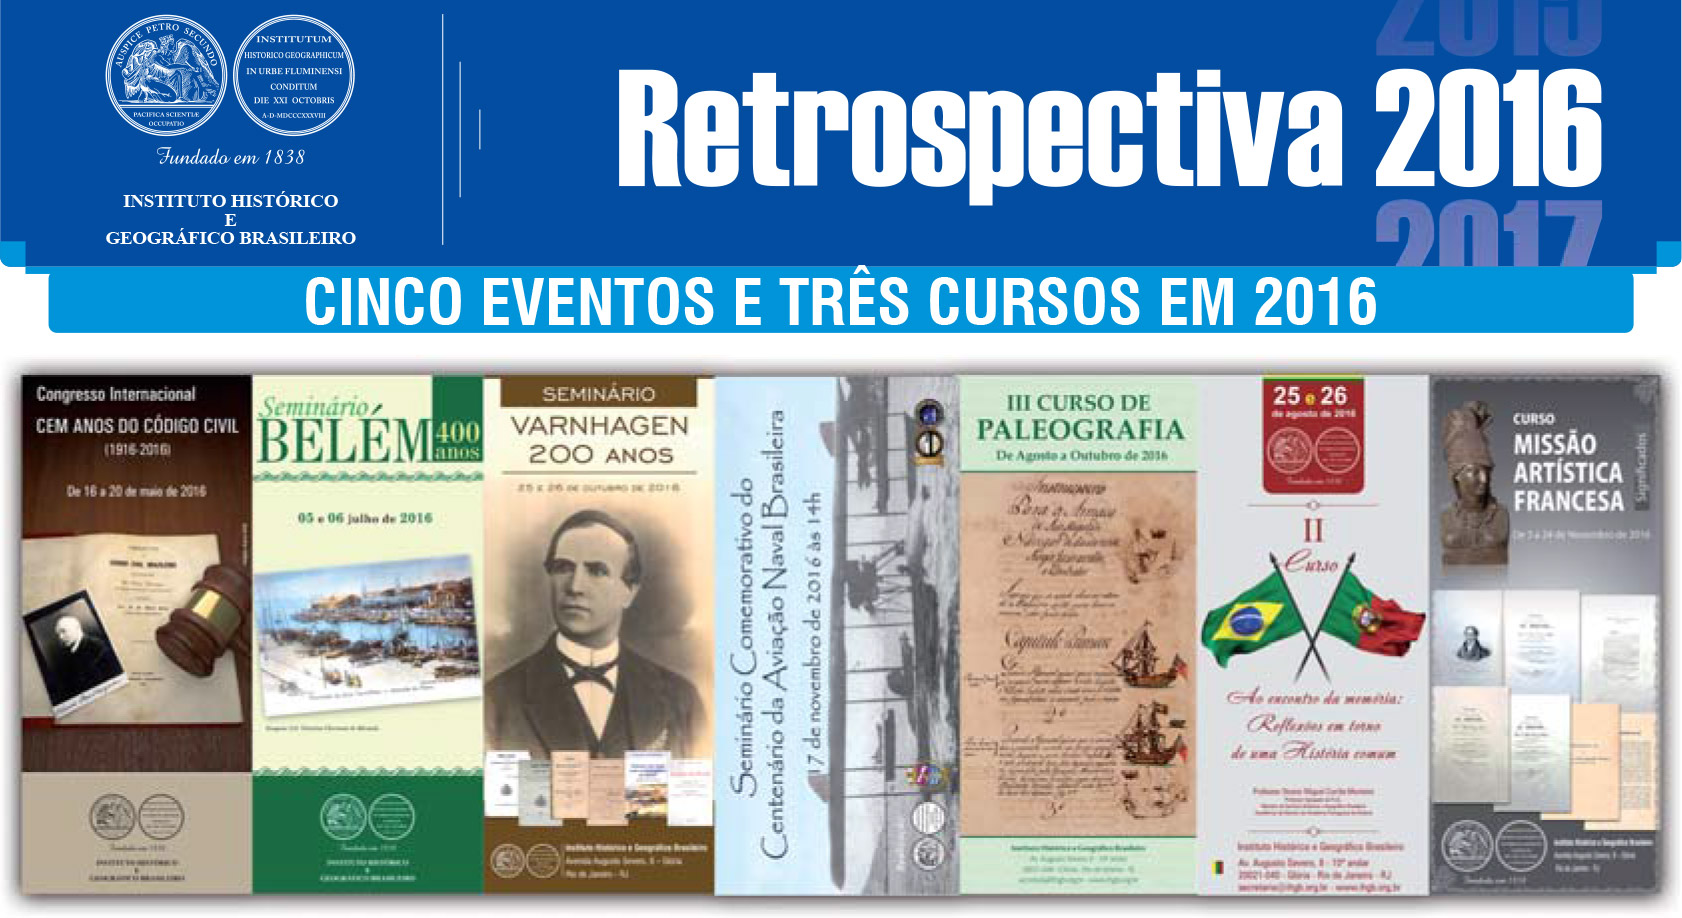 noticiario retrospectiva2016 ihgb 01